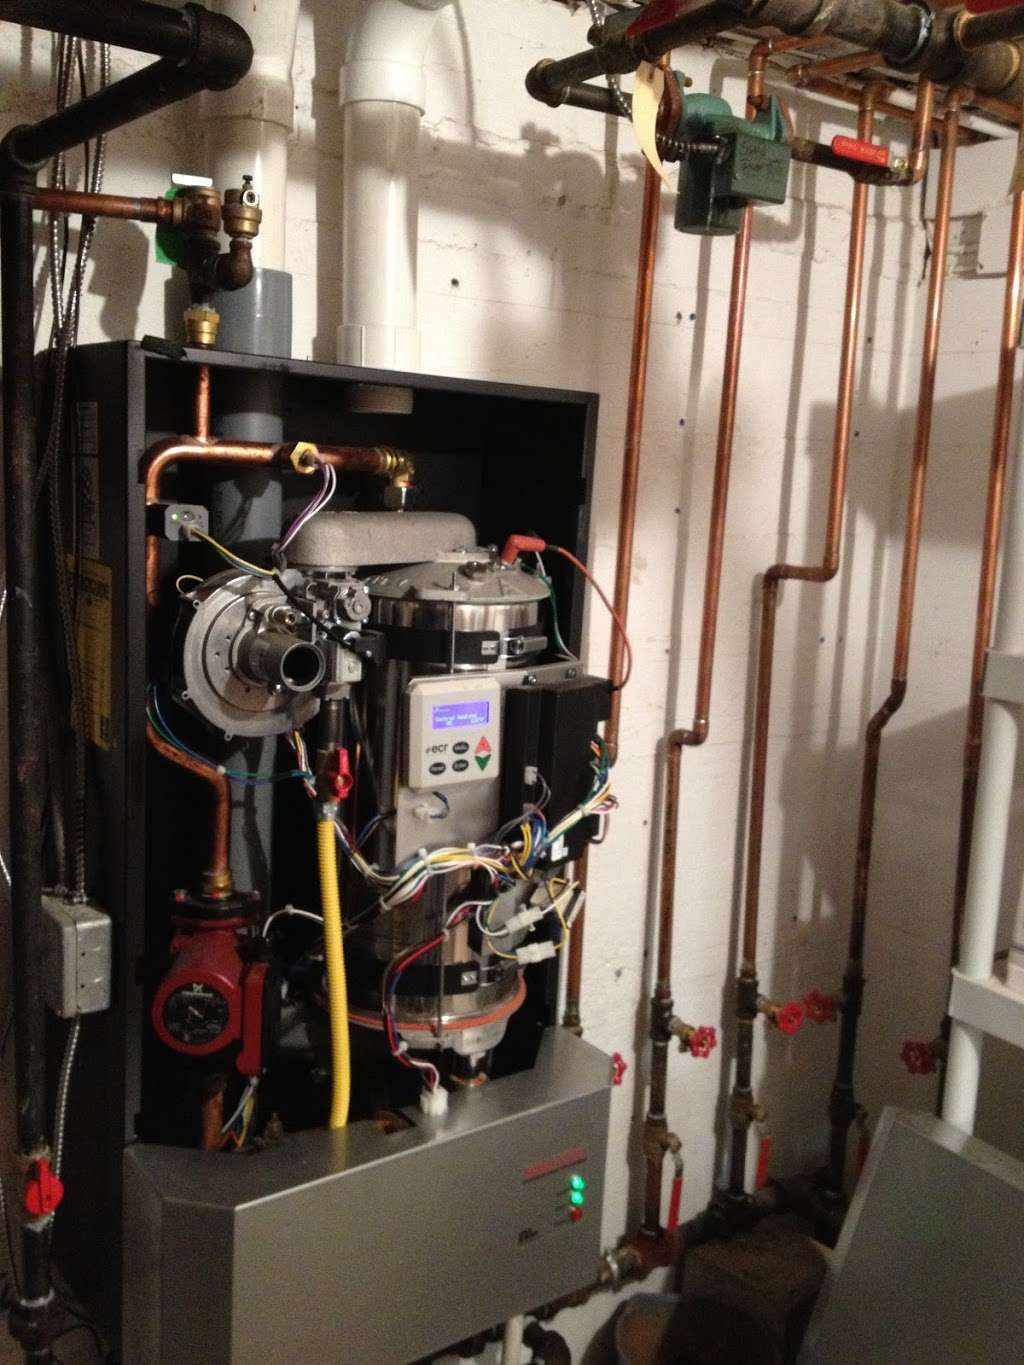 Carriere HVAC-Electric Inc - electrician  | Photo 7 of 8 | Address: 1603 Crescent Point Dr, Katy, TX 77494, USA | Phone: (832) 913-9261